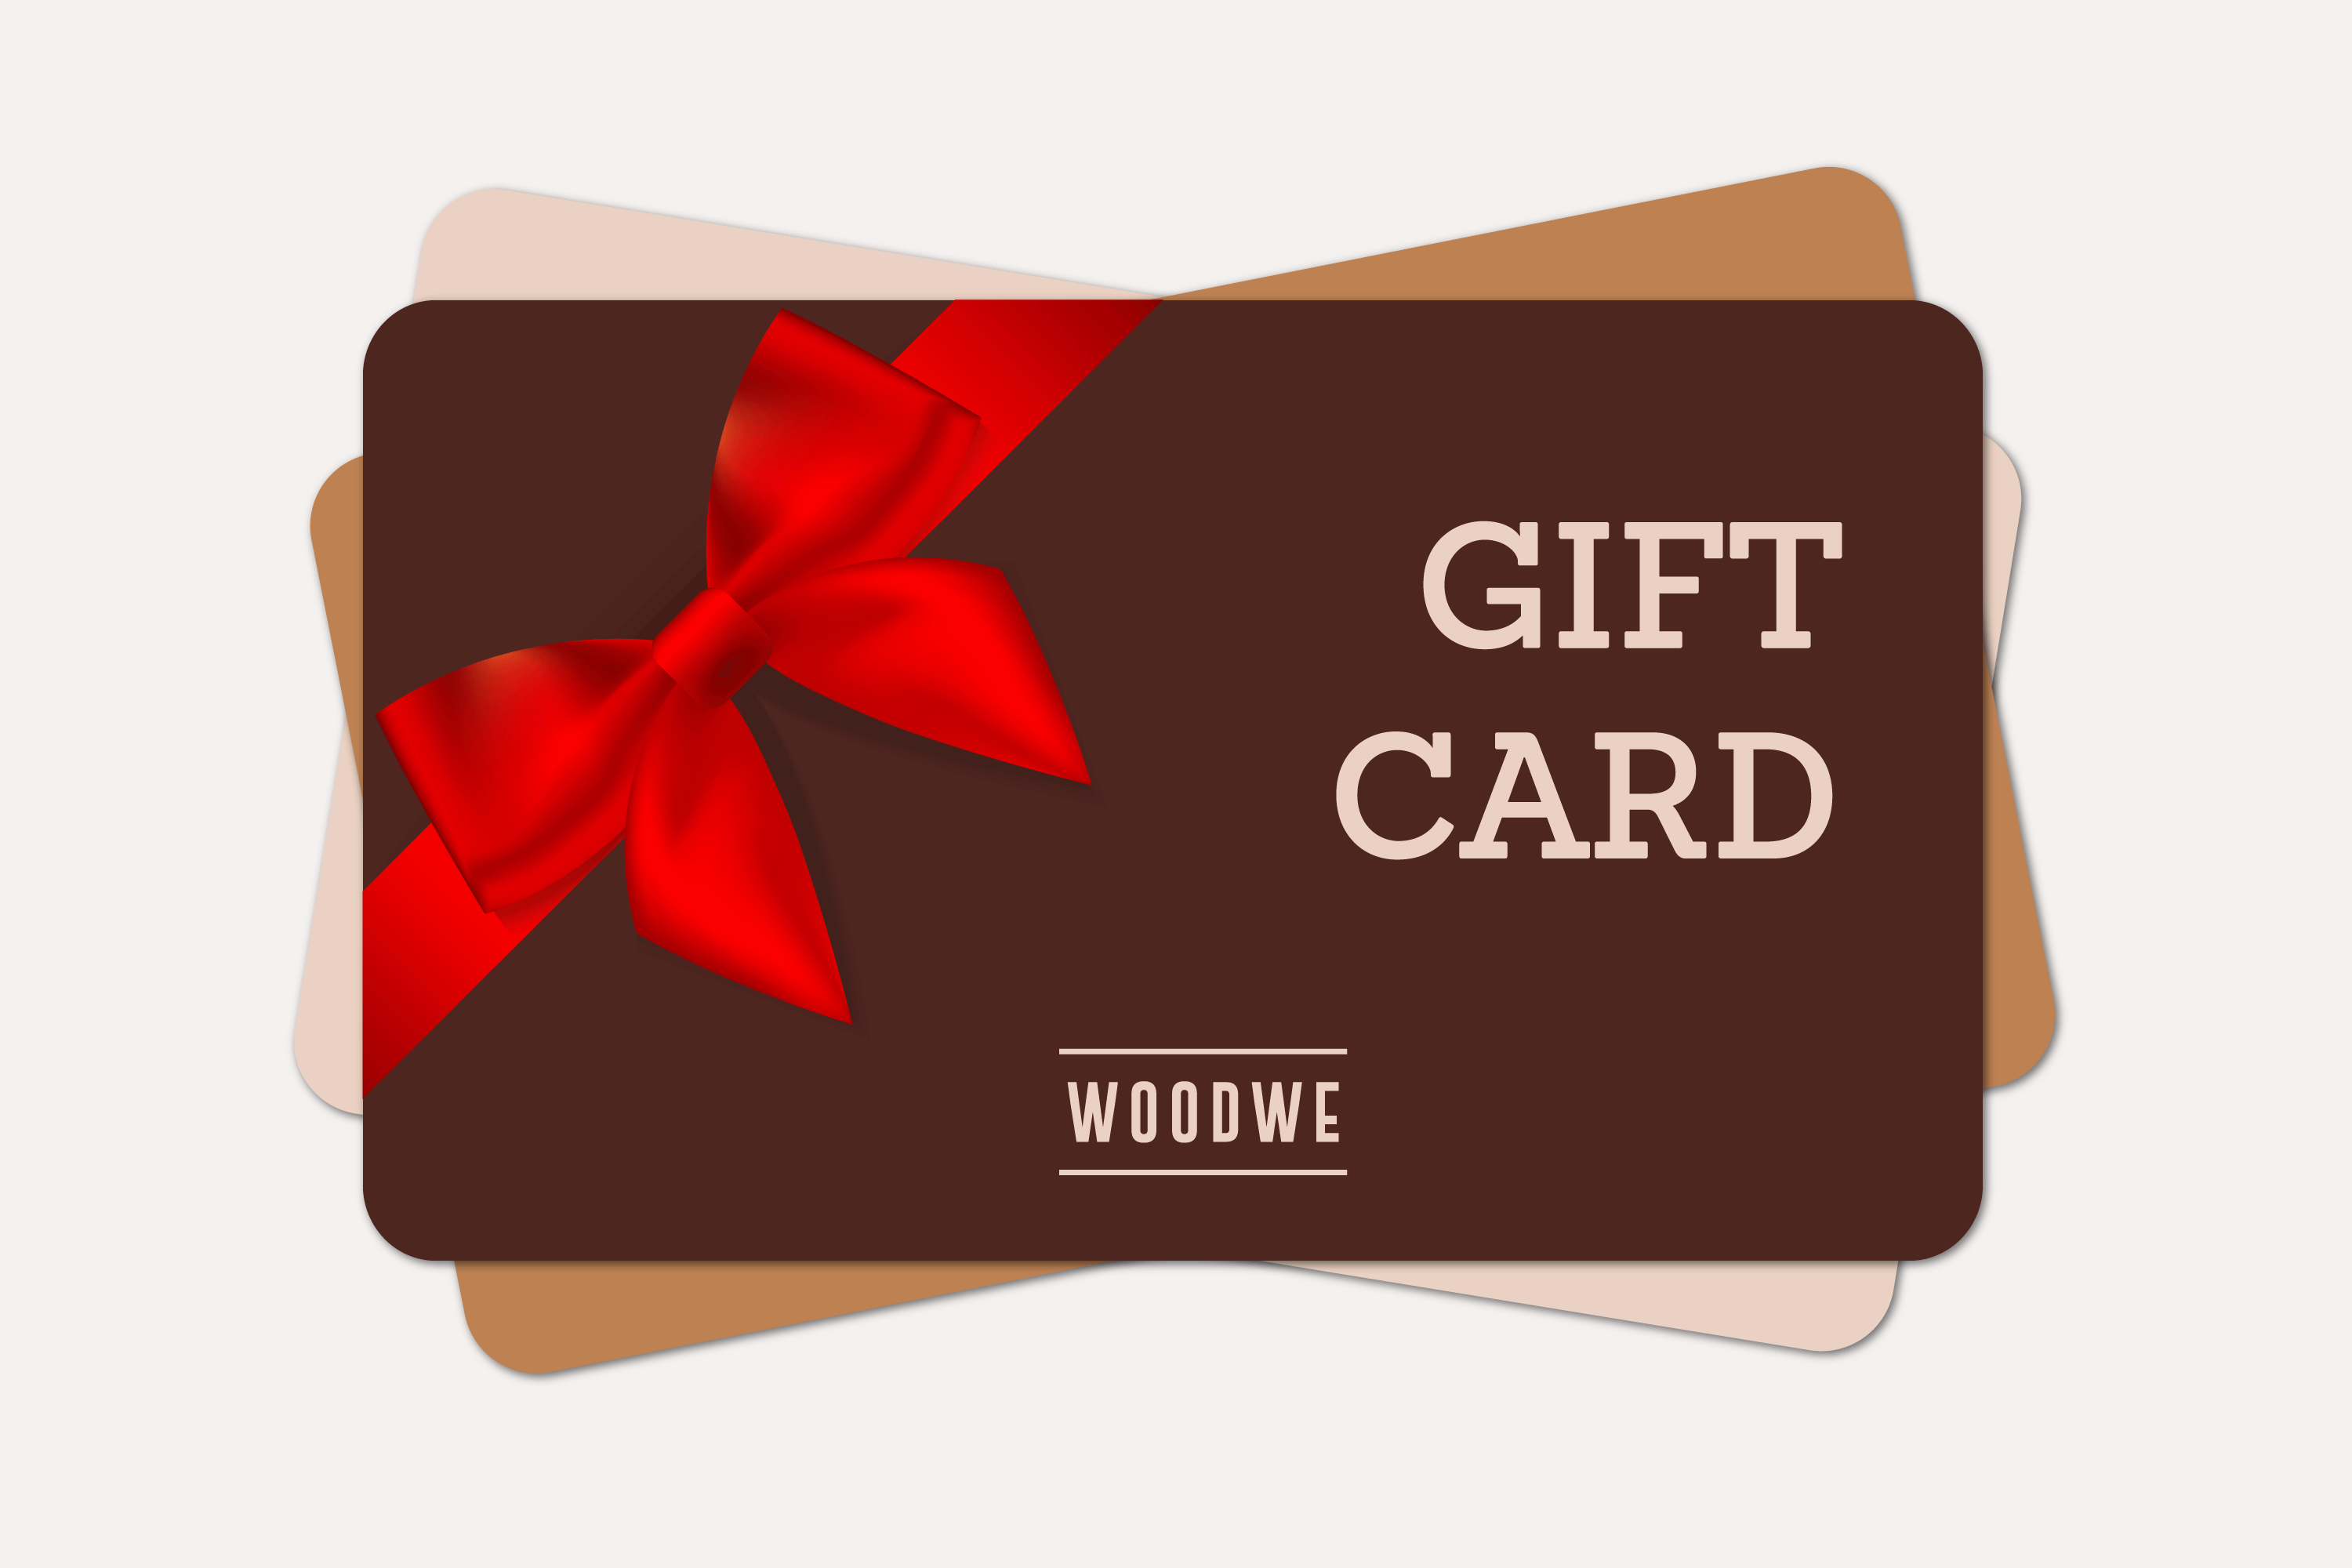 photograph about Printable Gift Cards named Printable Reward Card WoodWe